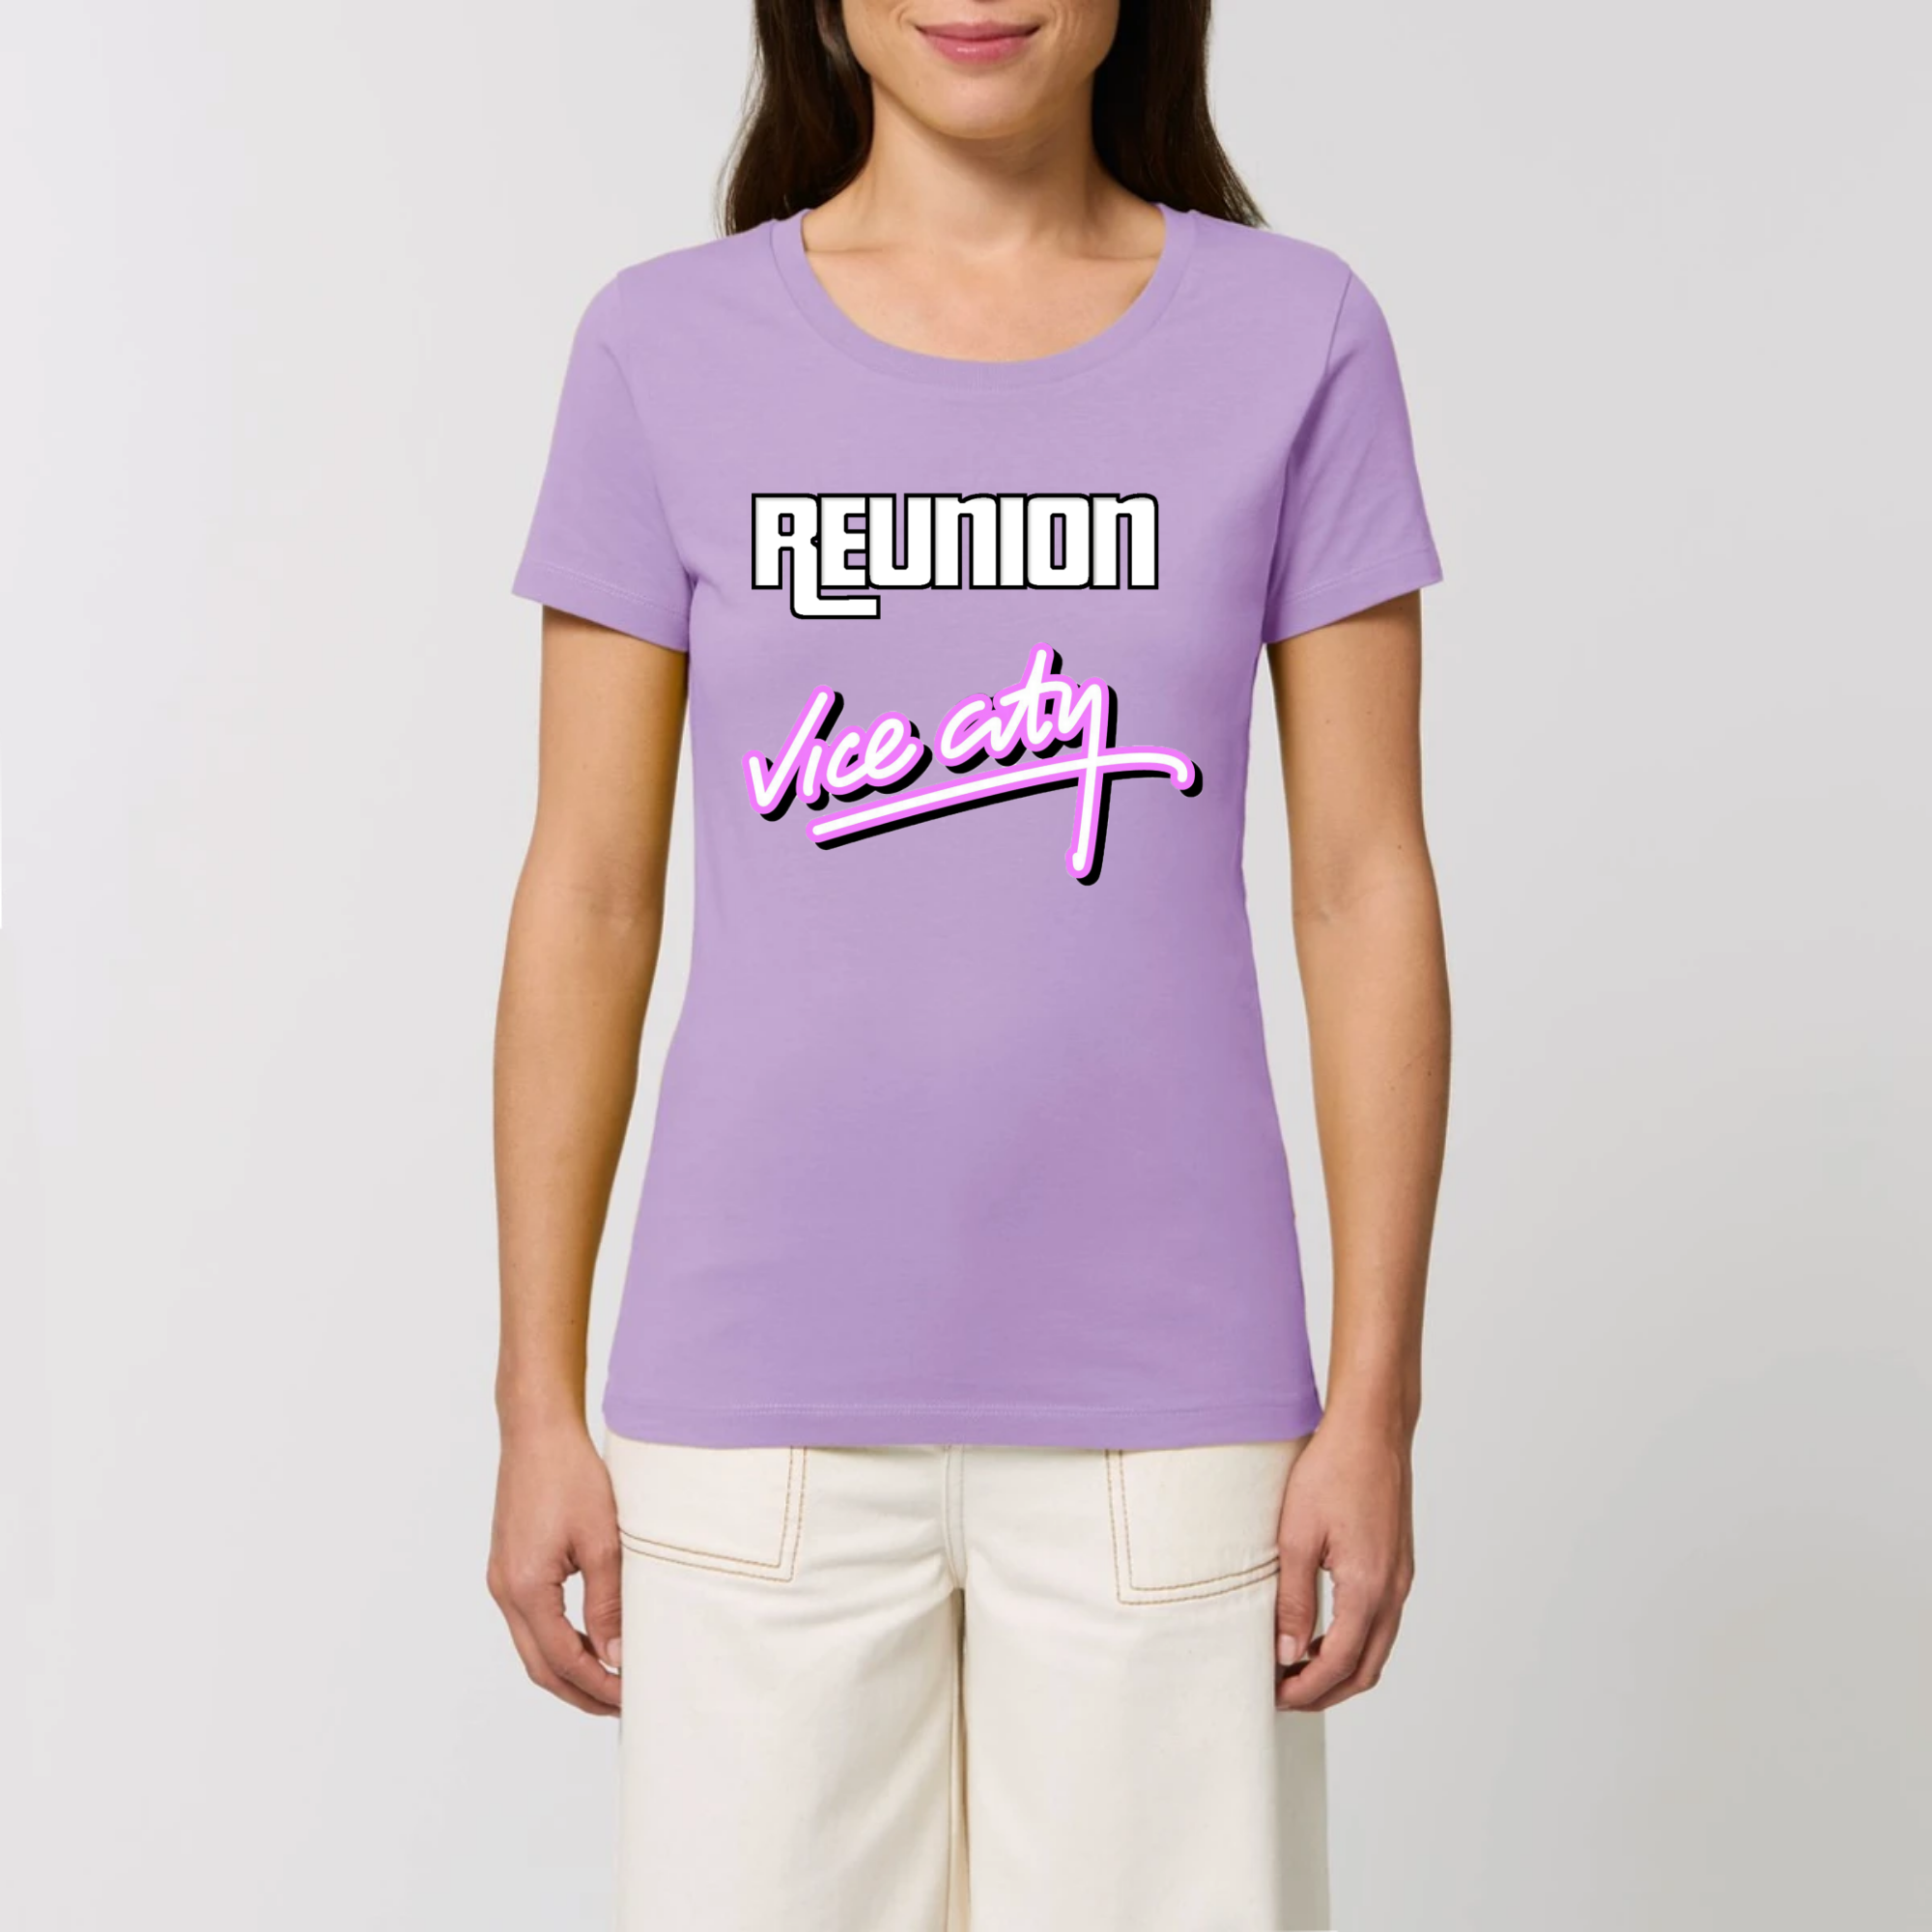 T-shirt vice city